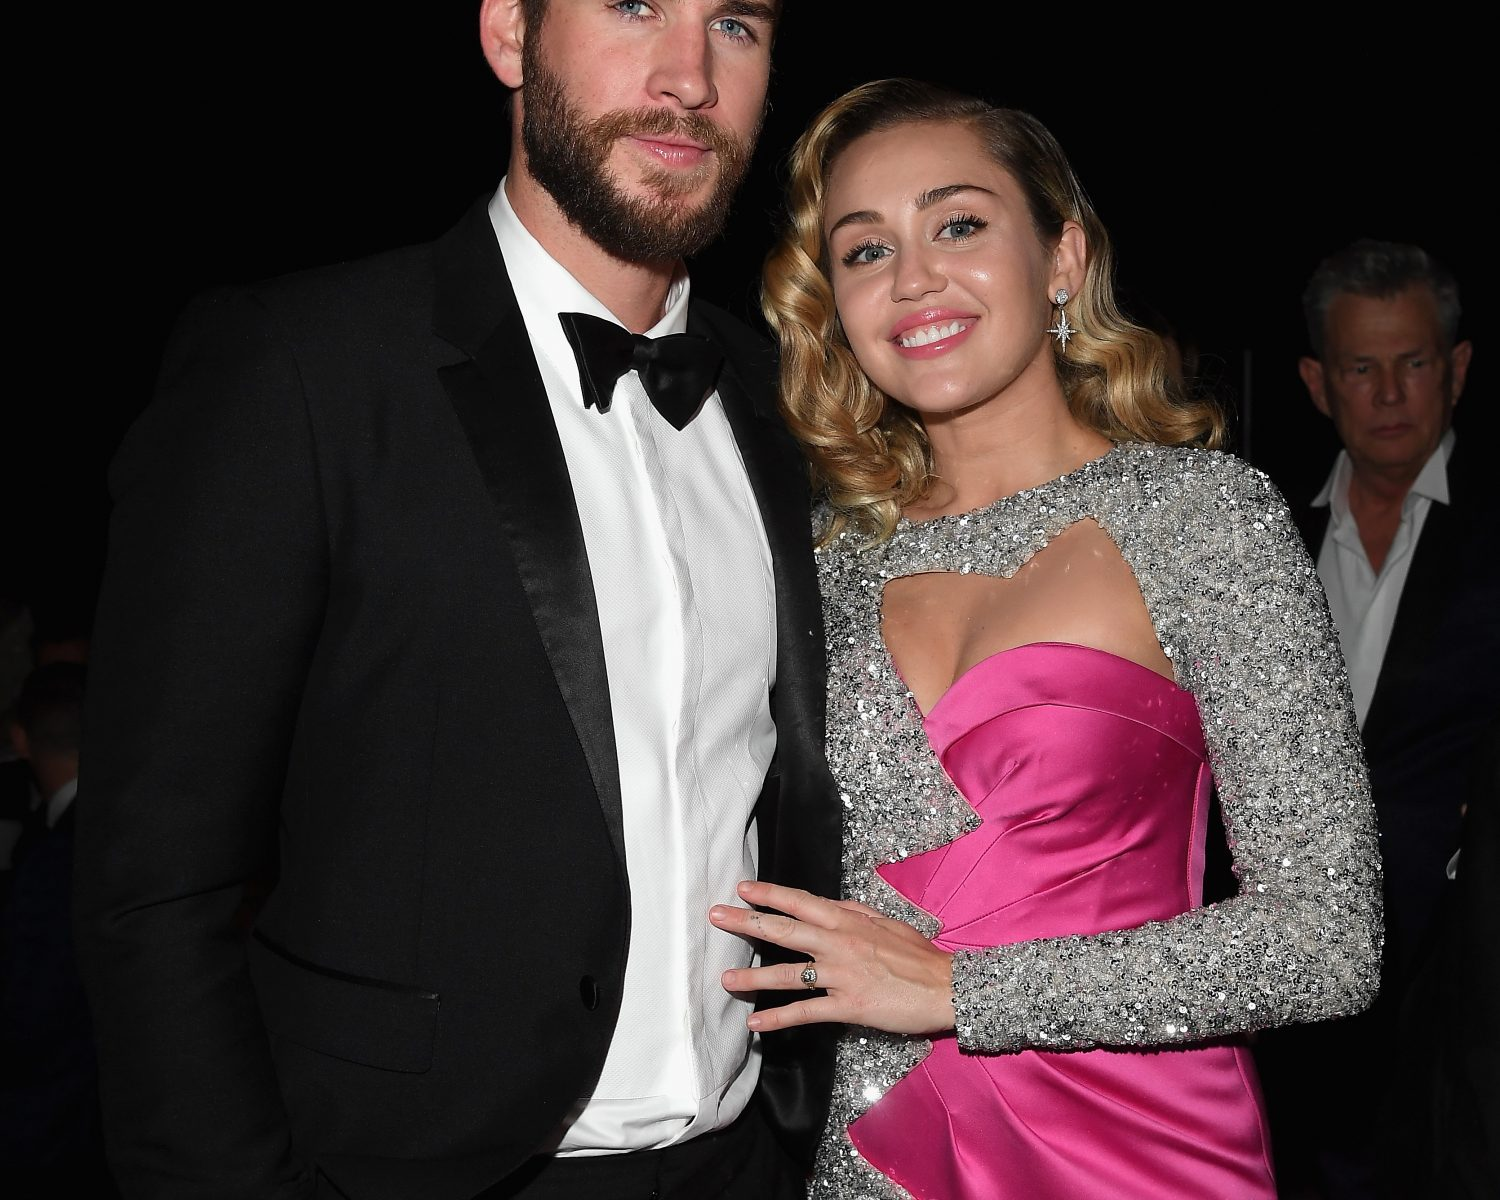 Miley Cyrus Wedding Dress.Miley Cyrus Confirms Her Marriage To Liam Hemsworth See The First